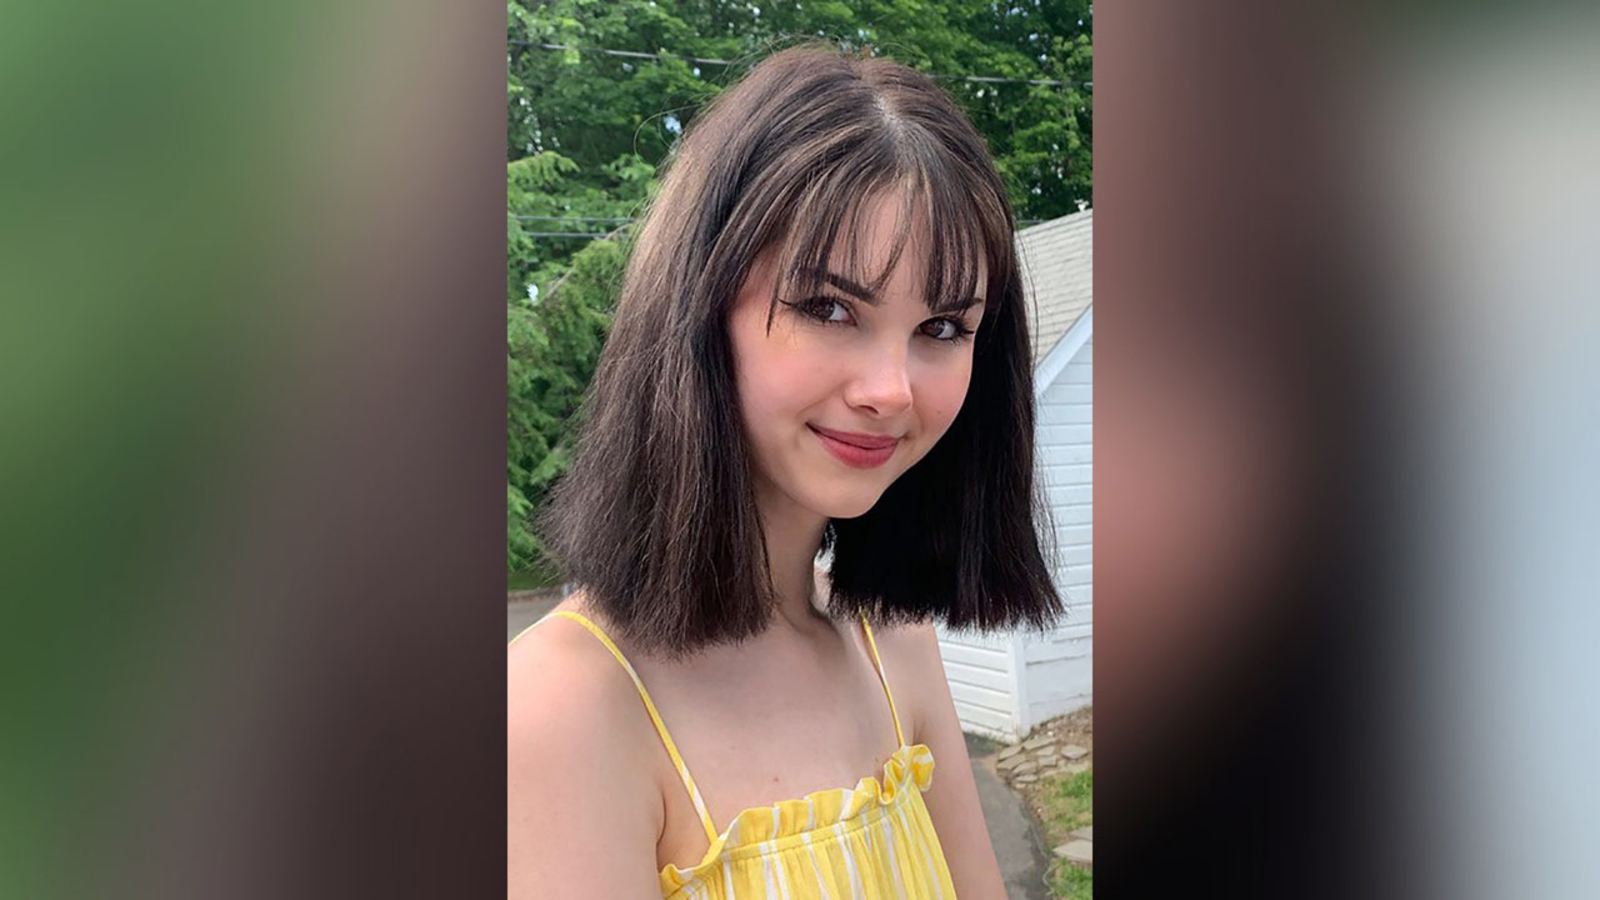 Police: Teen killed by man she met on Instagram who then posted photos of corpse online